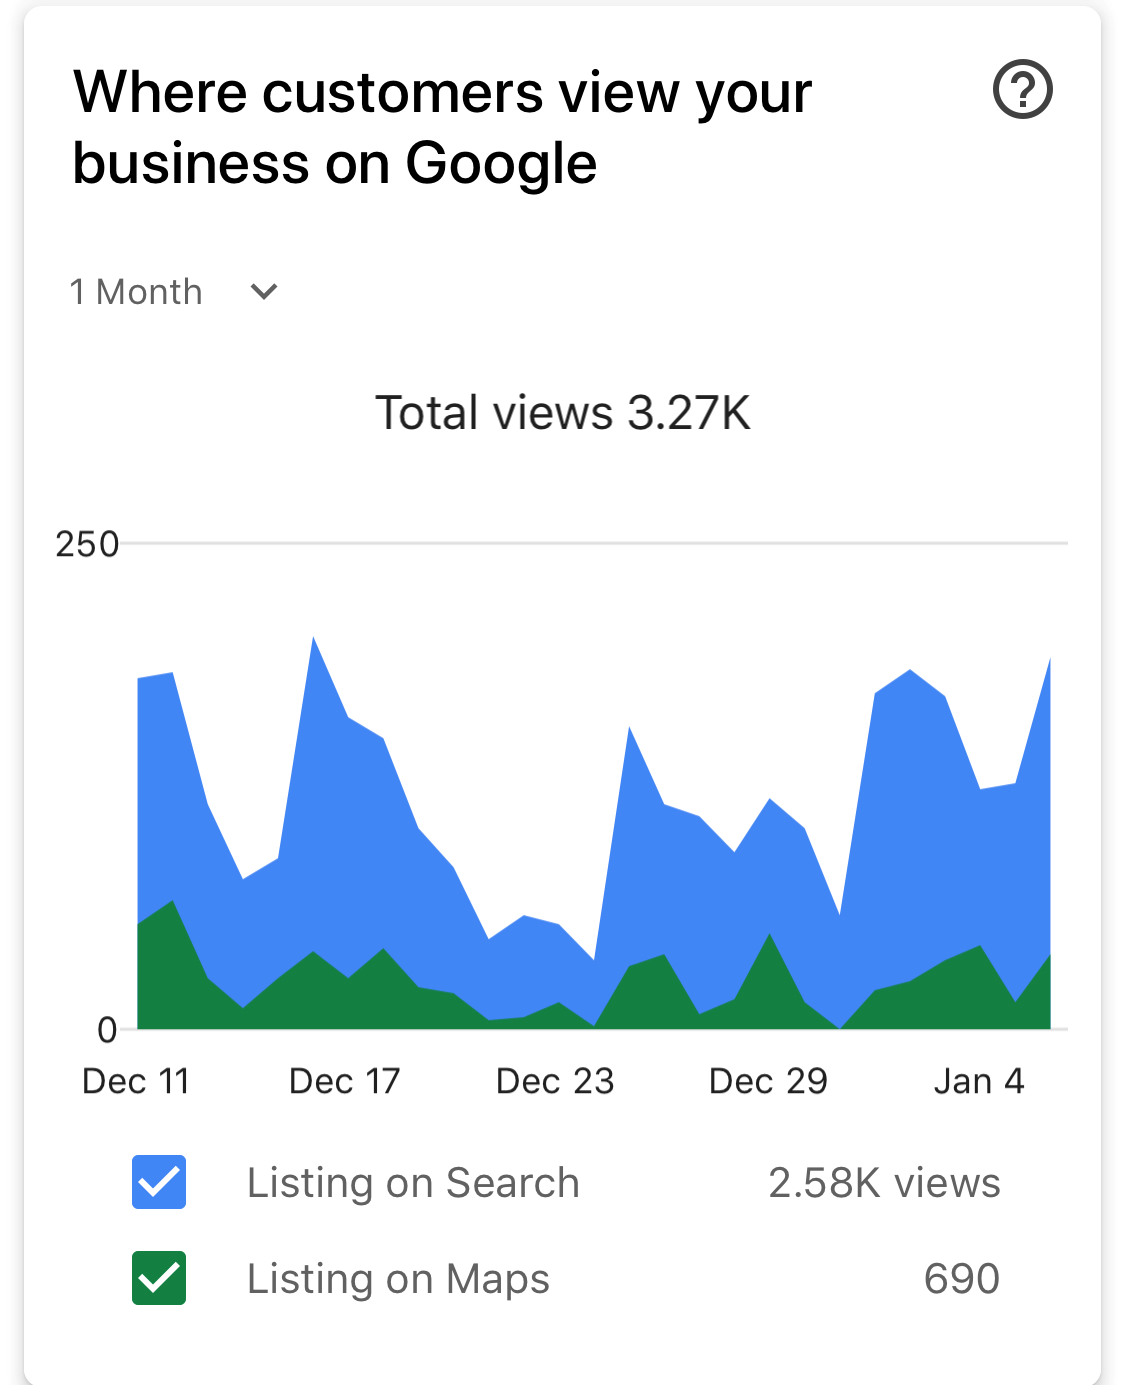 Google My Business Chart for Where Customers Viewed the Business - 2.58K views for listing on search, 690 views for listing on maps